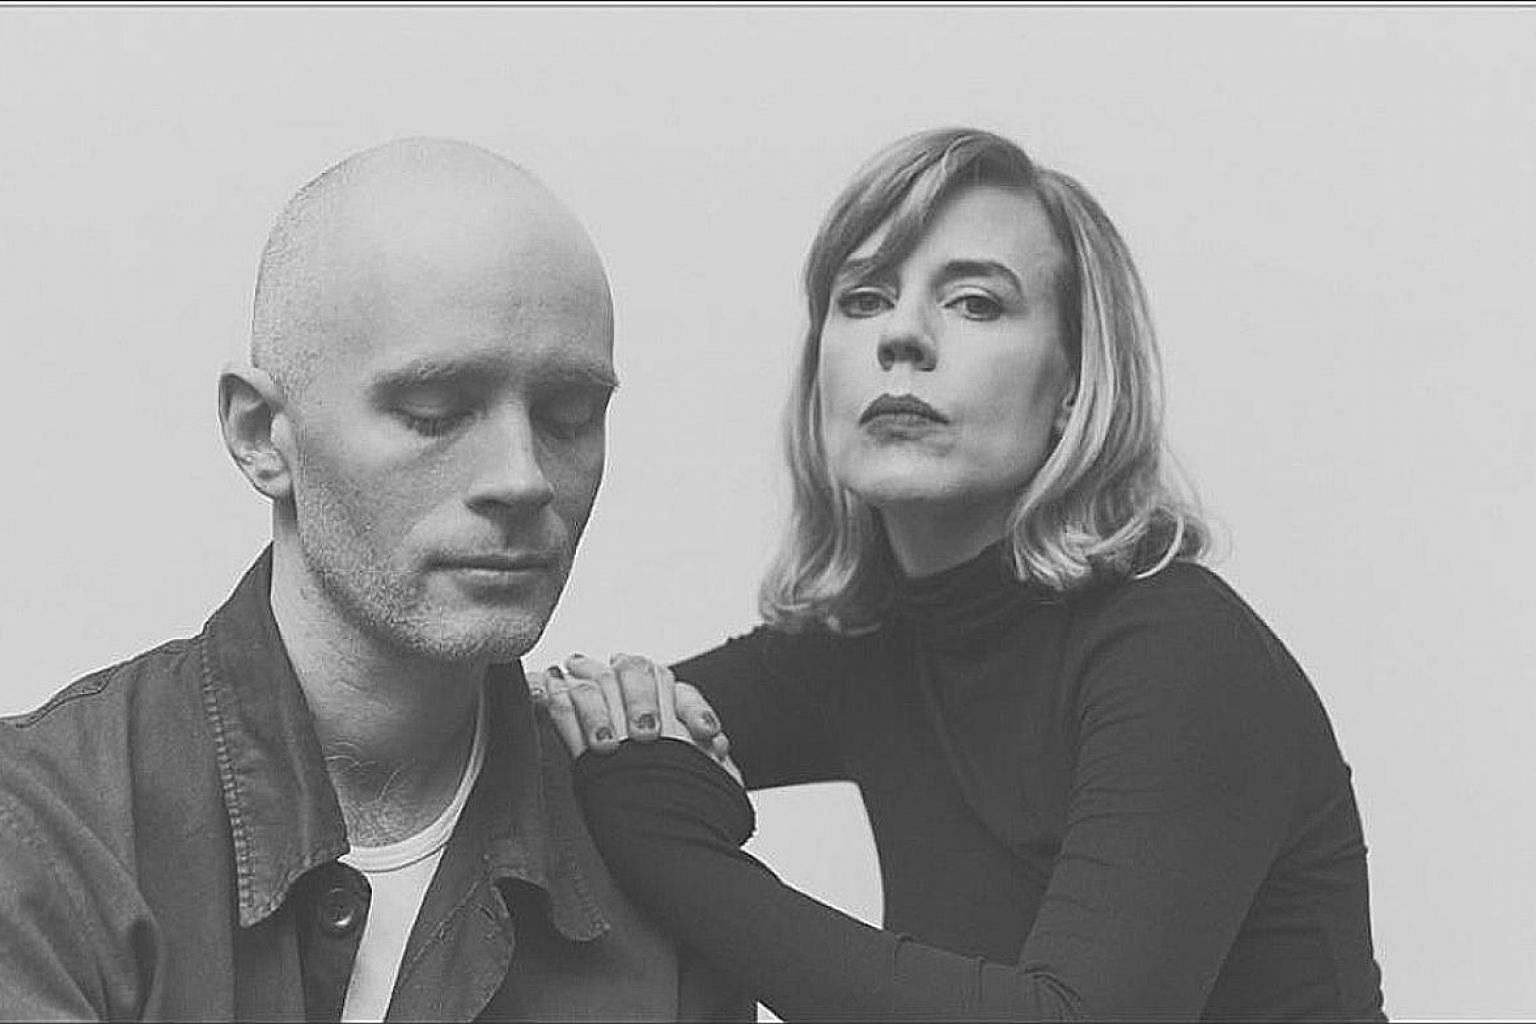 Jens Lekman (left) and Annika Norlin sing of topical issues, the difficulty of making and maintaining friends, as well as showering in public.